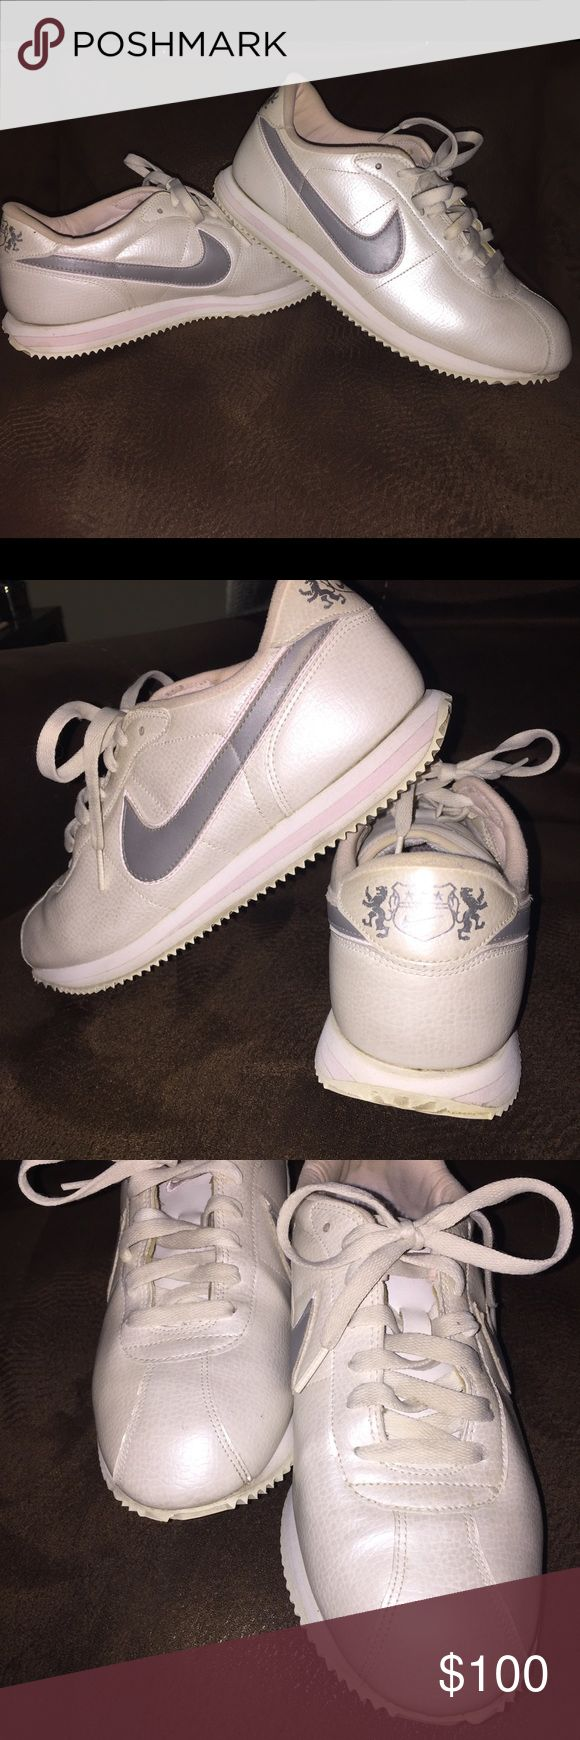 Beautiful shimmery white/pink/grey Nike Cortez 9.5 These are 'vintage' Nikes. Purchased in 2007, these are true Cortez beauties. Super clean, inside and out. I rarely wore them and I've held onto them bagged & boxed. Nikes run small, so while they say 9.5, they're actually closer to 9. They're a white/silvery shimmer with pale pink EVA striped outsole, the swoosh is grey with a pale pink swoosh under that. These are a collector's dream. The outsoles are clean and pristine. Nike Shoes…